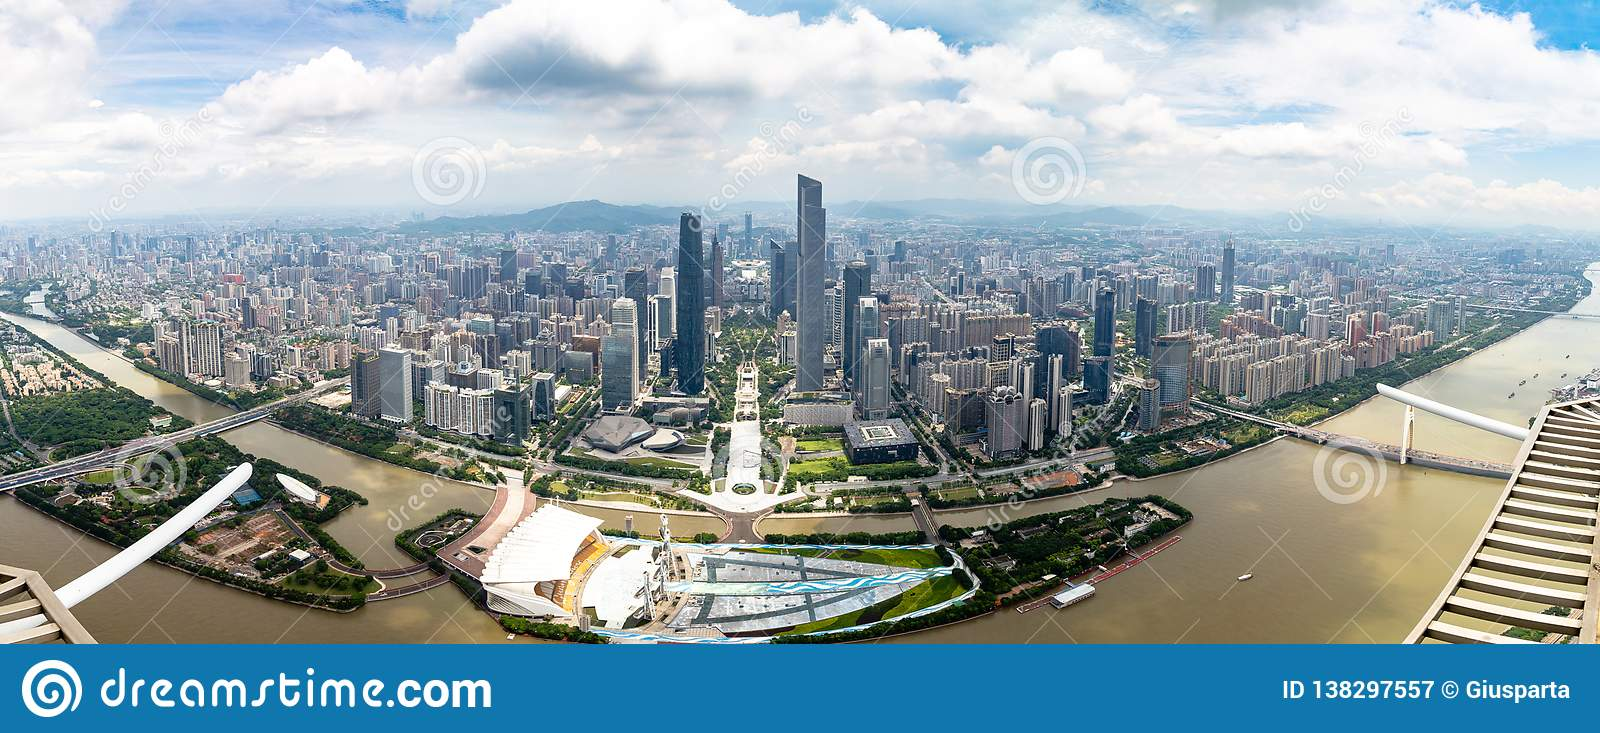 July 2017 – Guangzhou, China – Panoramic view of Guangzhou central business district and of the Pearl River